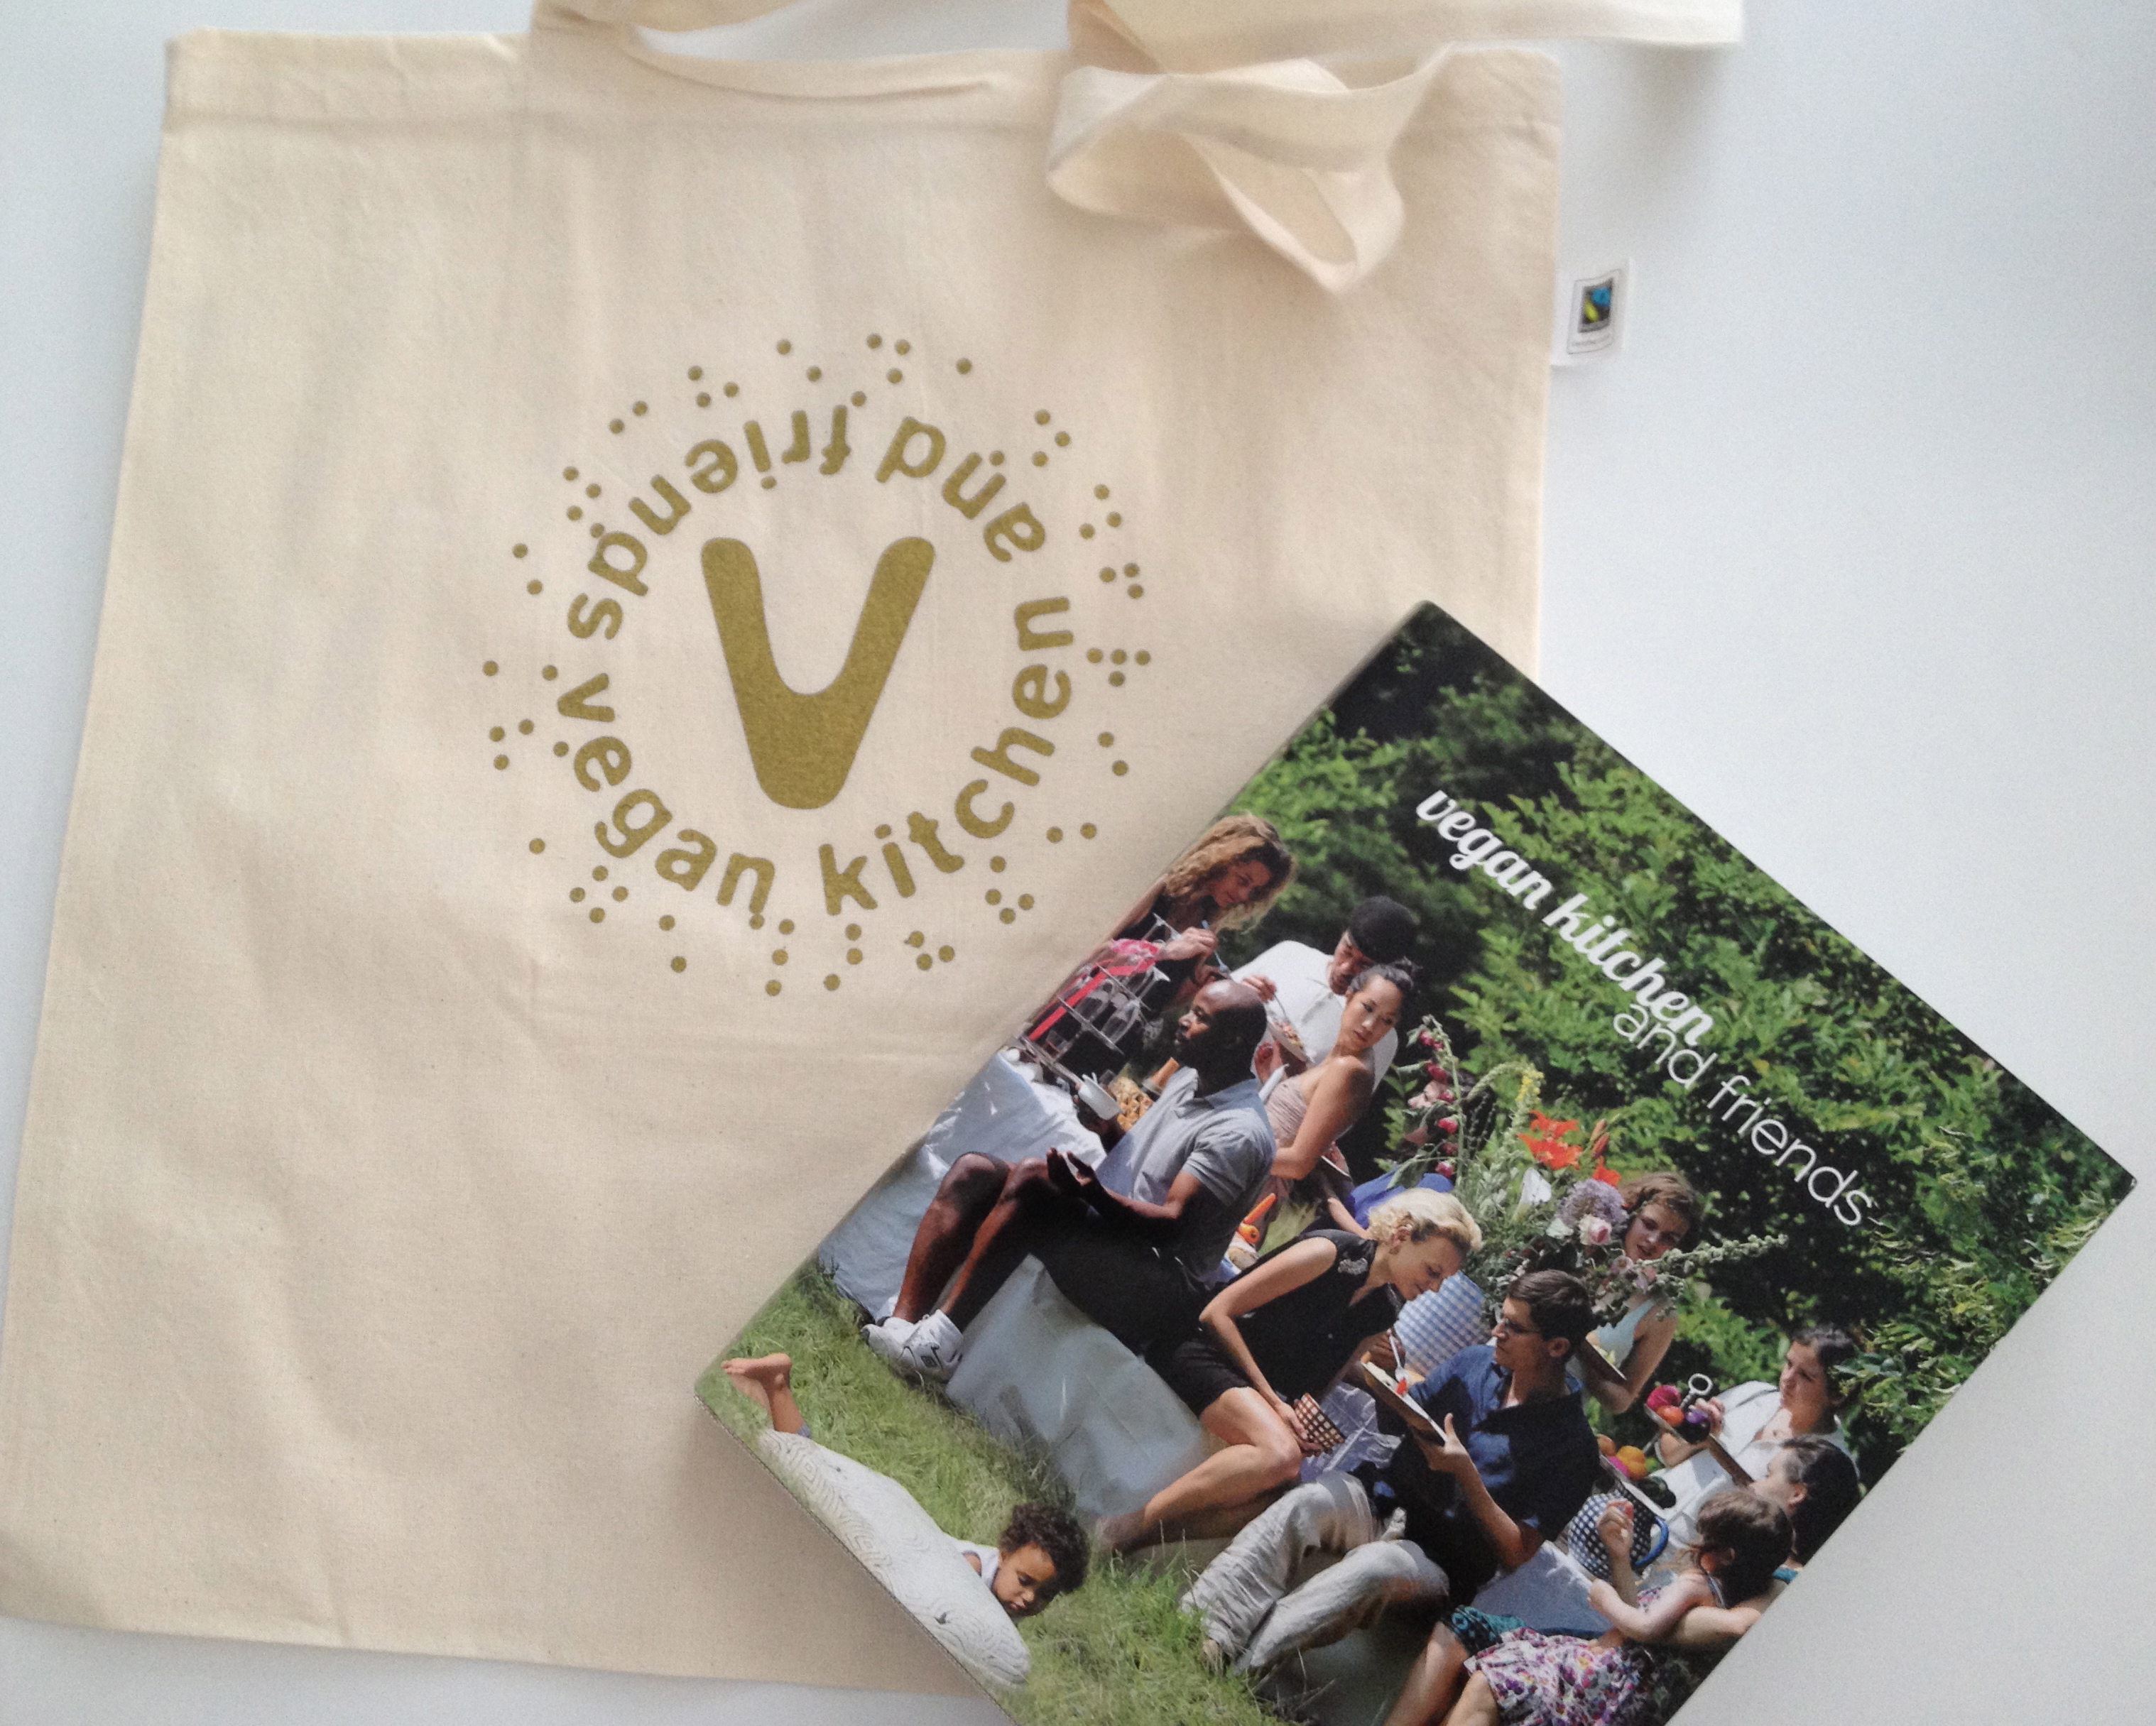 Limited Edition of 43 vegankitchen&friends cookbooks, all signed by the 43 chefs. come with a handmade golden logo printed on a organic- cotton sac